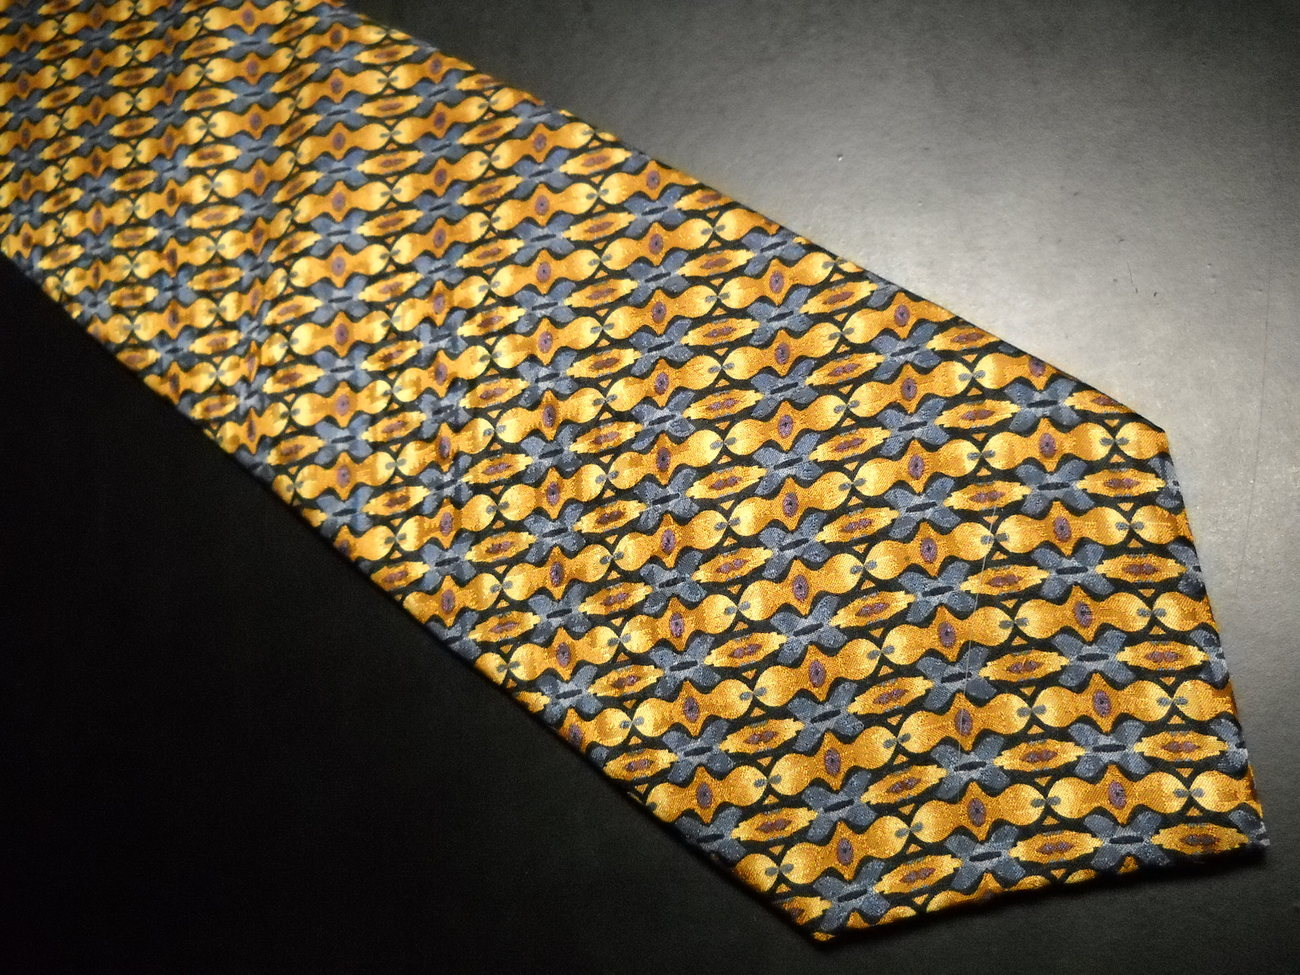 Tie artisphere charles vinson links of gold and yellow on gray 02